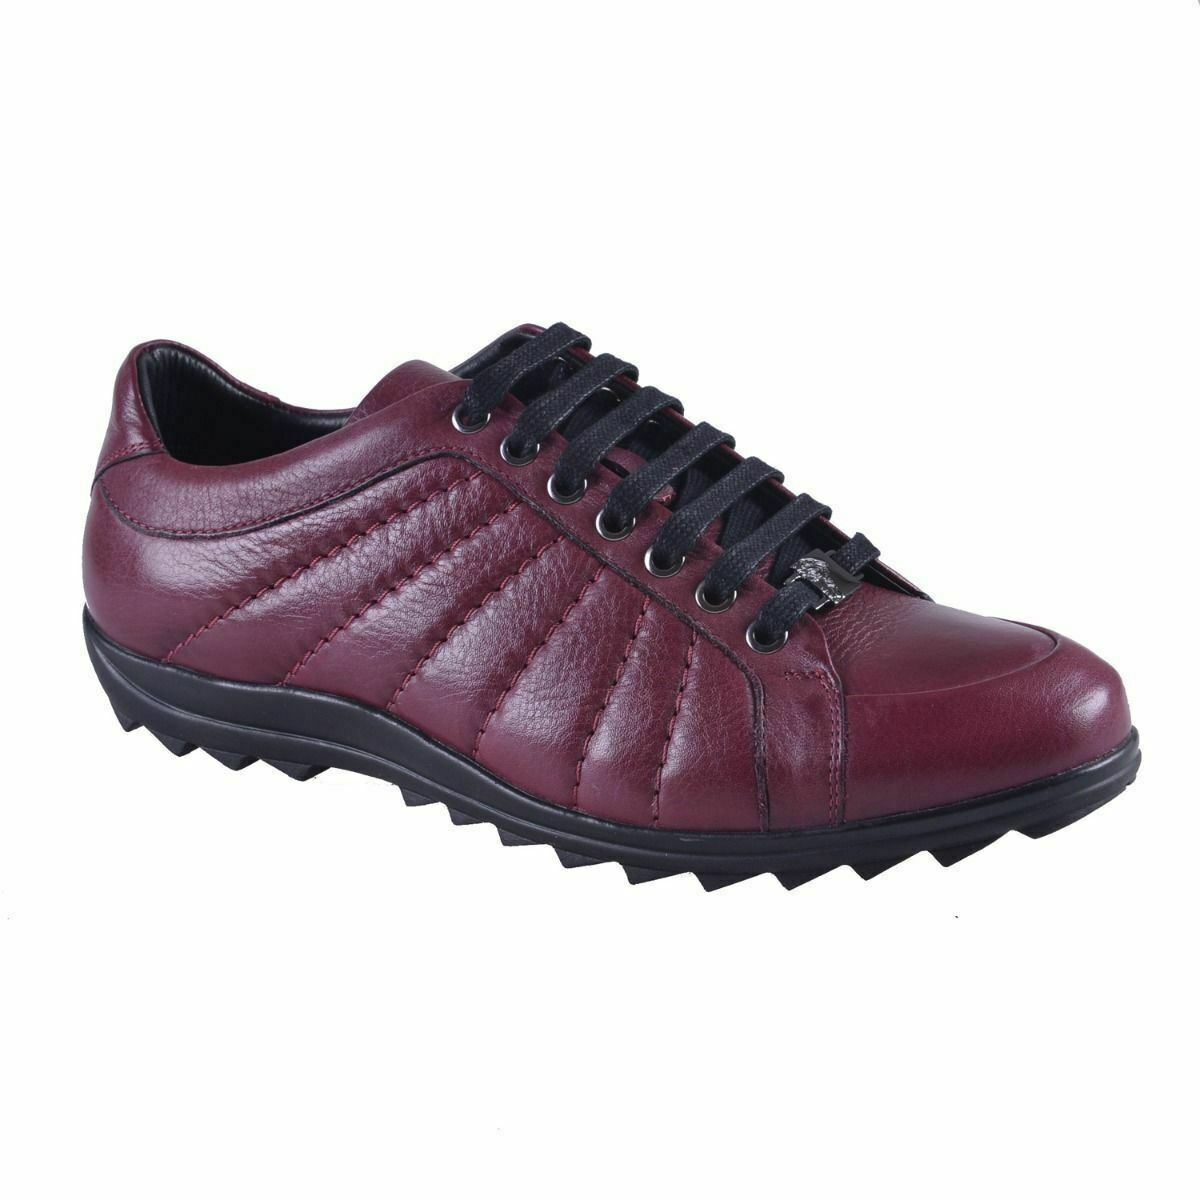 Versace Collection Men's Burgundy Leather Fashion Sneakers shoes 6 7 8 9 10 11